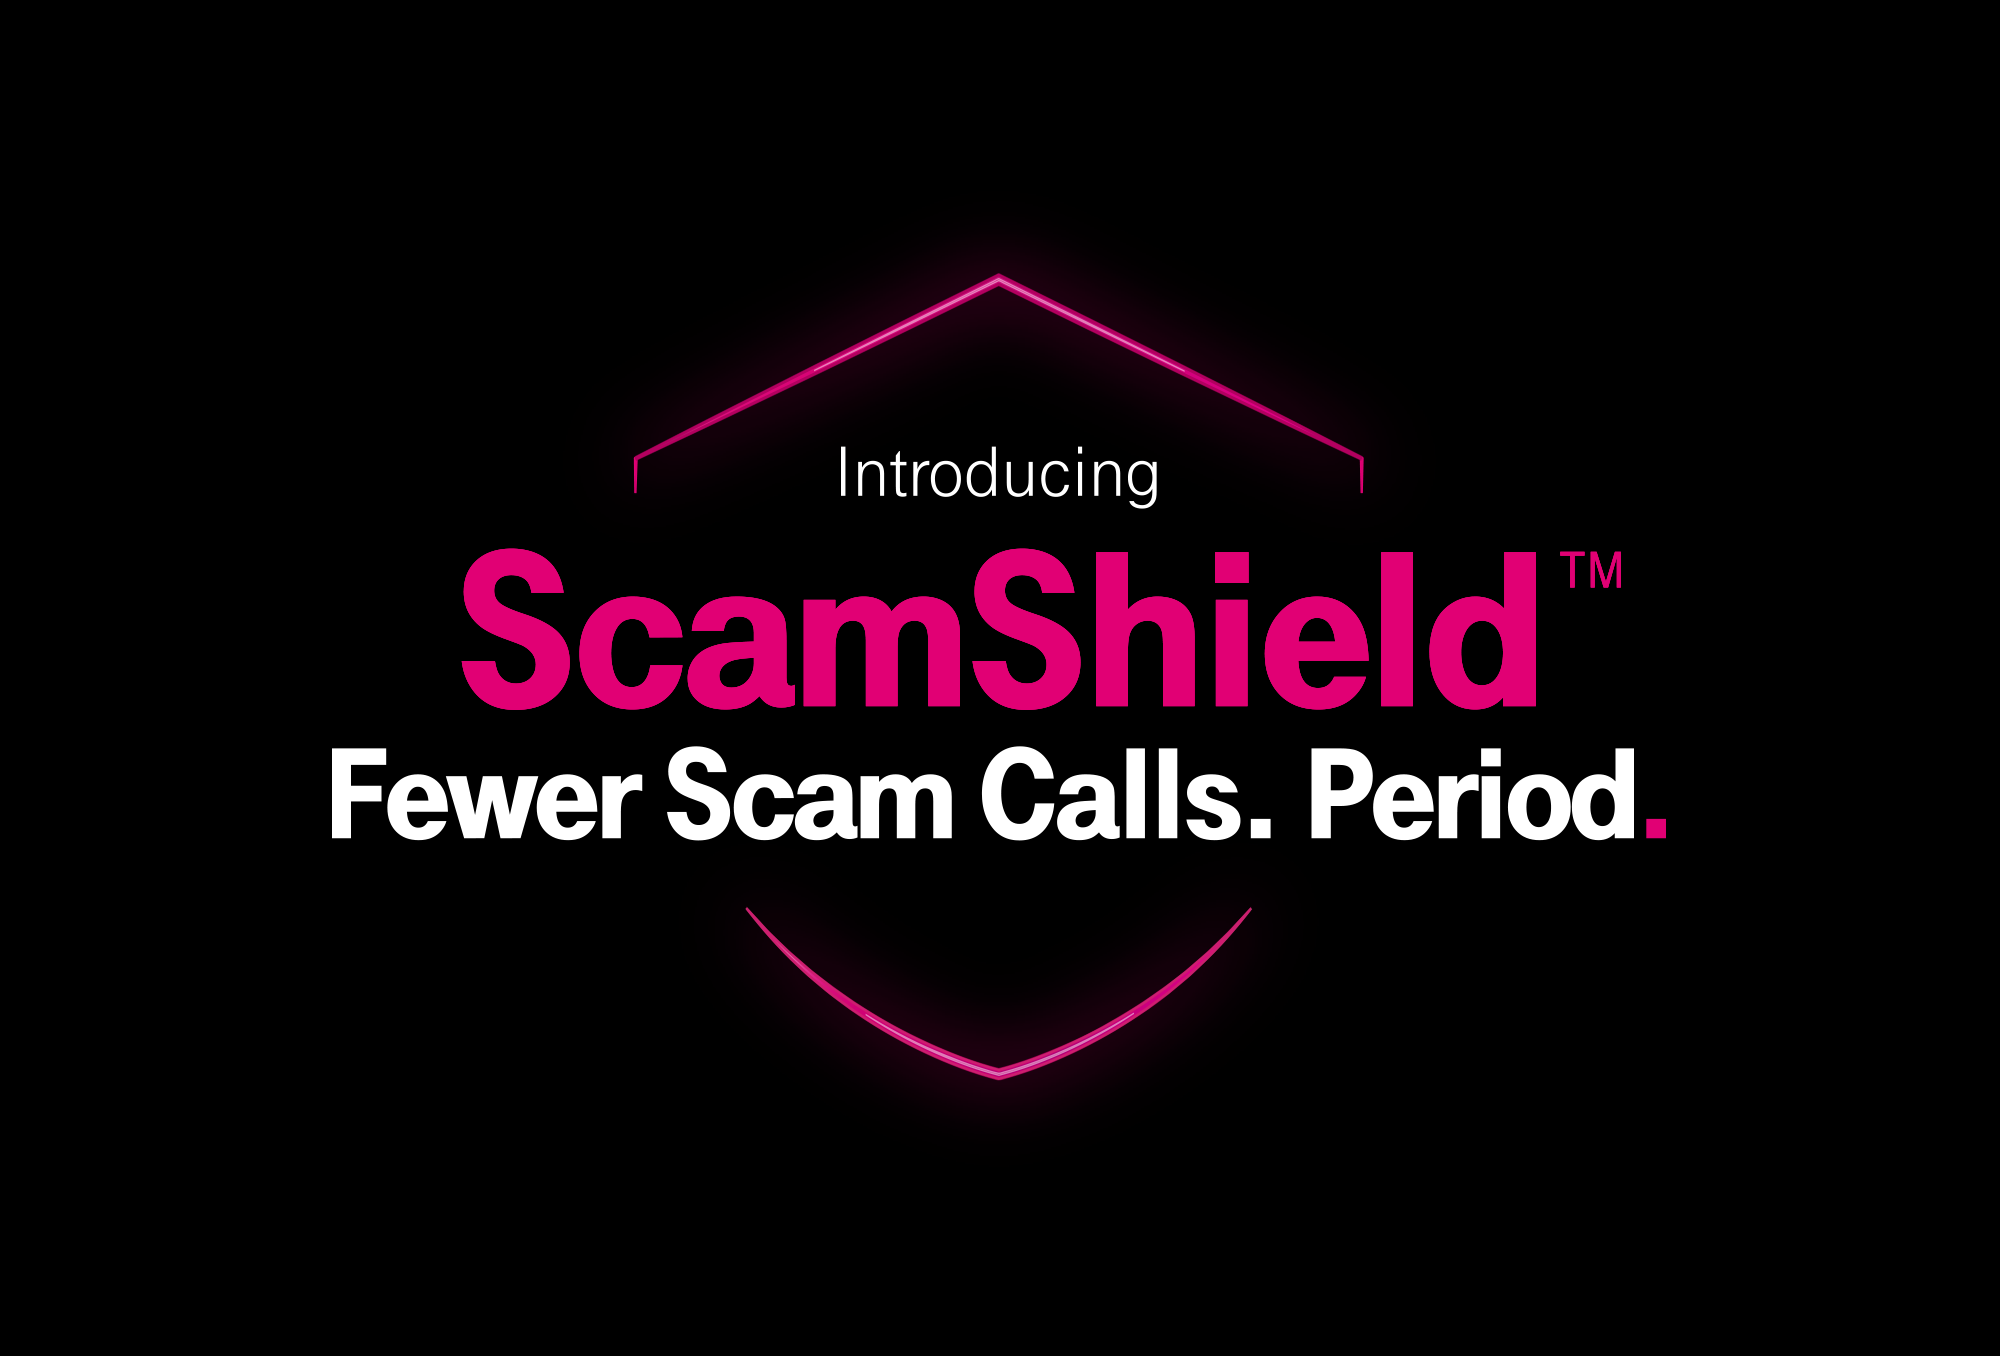 T-Mobile ScamShield